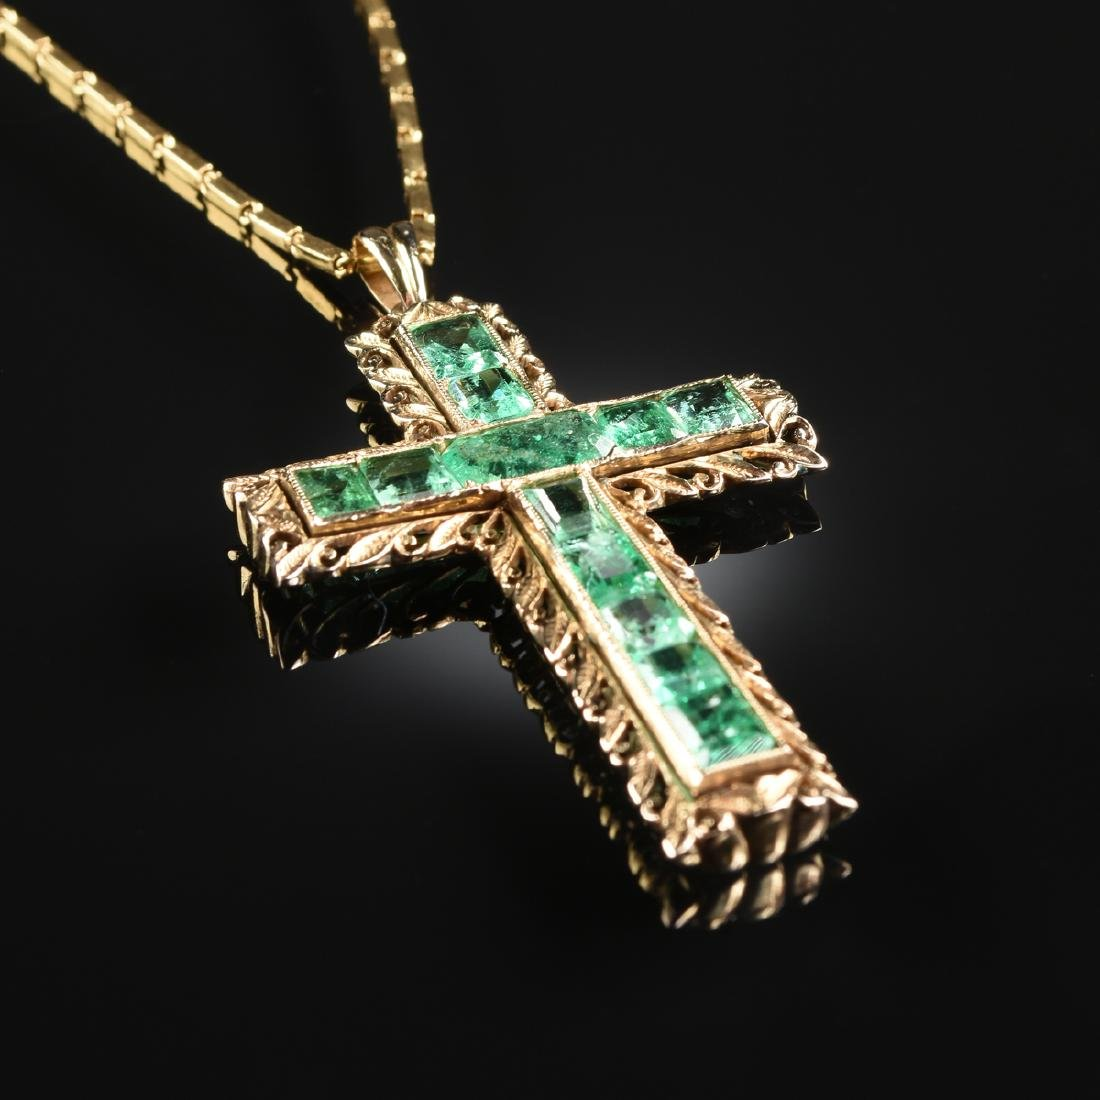 AN 18K YELLOW GOLD AND EMERALD CROSS LADY'S PENDANT,